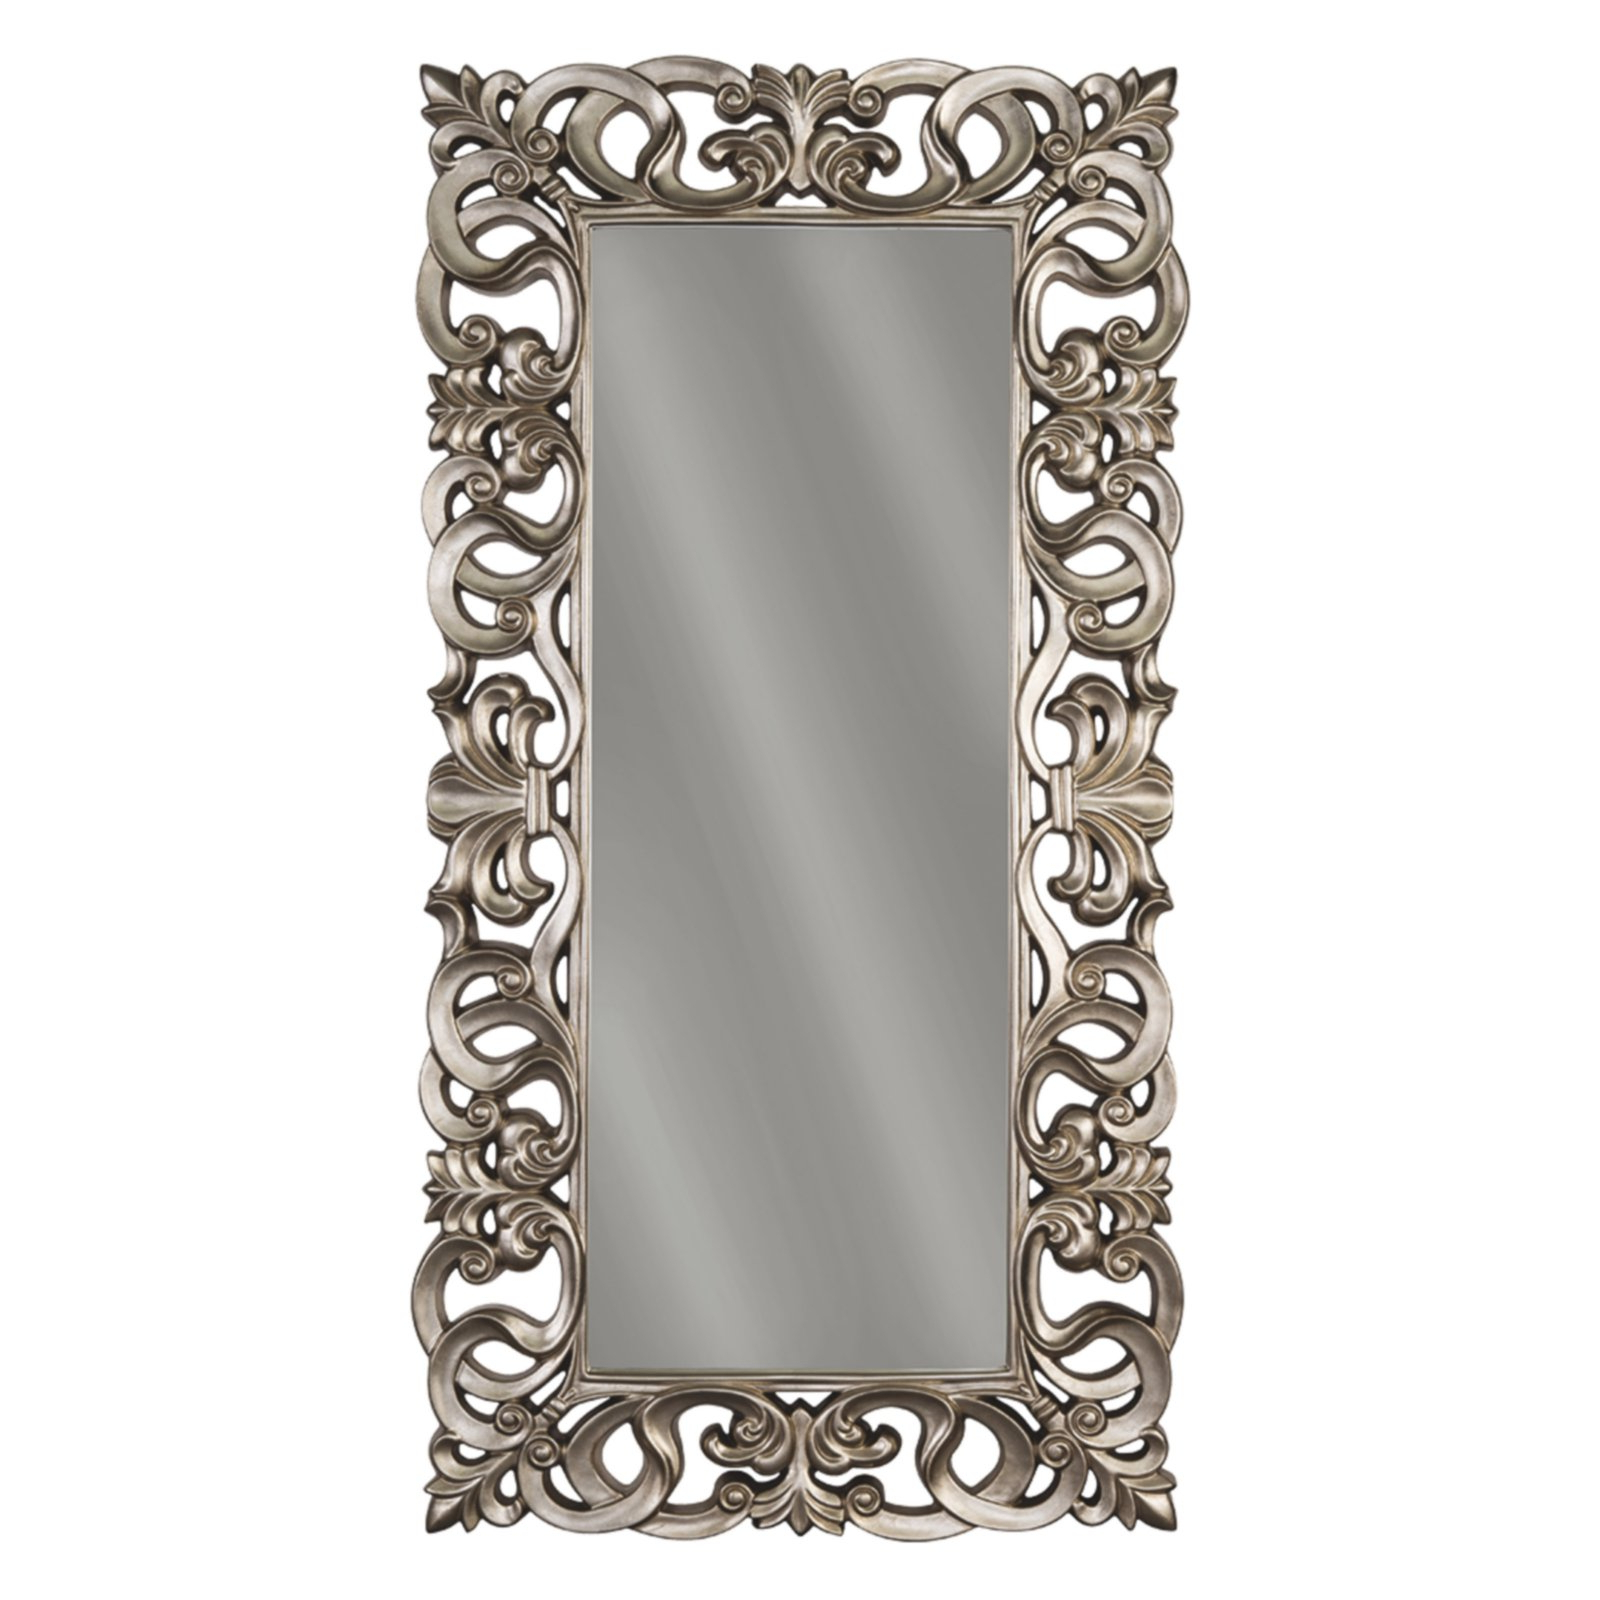 Ashley Lucia Accent Mirror – 30W X 71H In. Throughout Famous Accent Mirrors (Gallery 2 of 20)